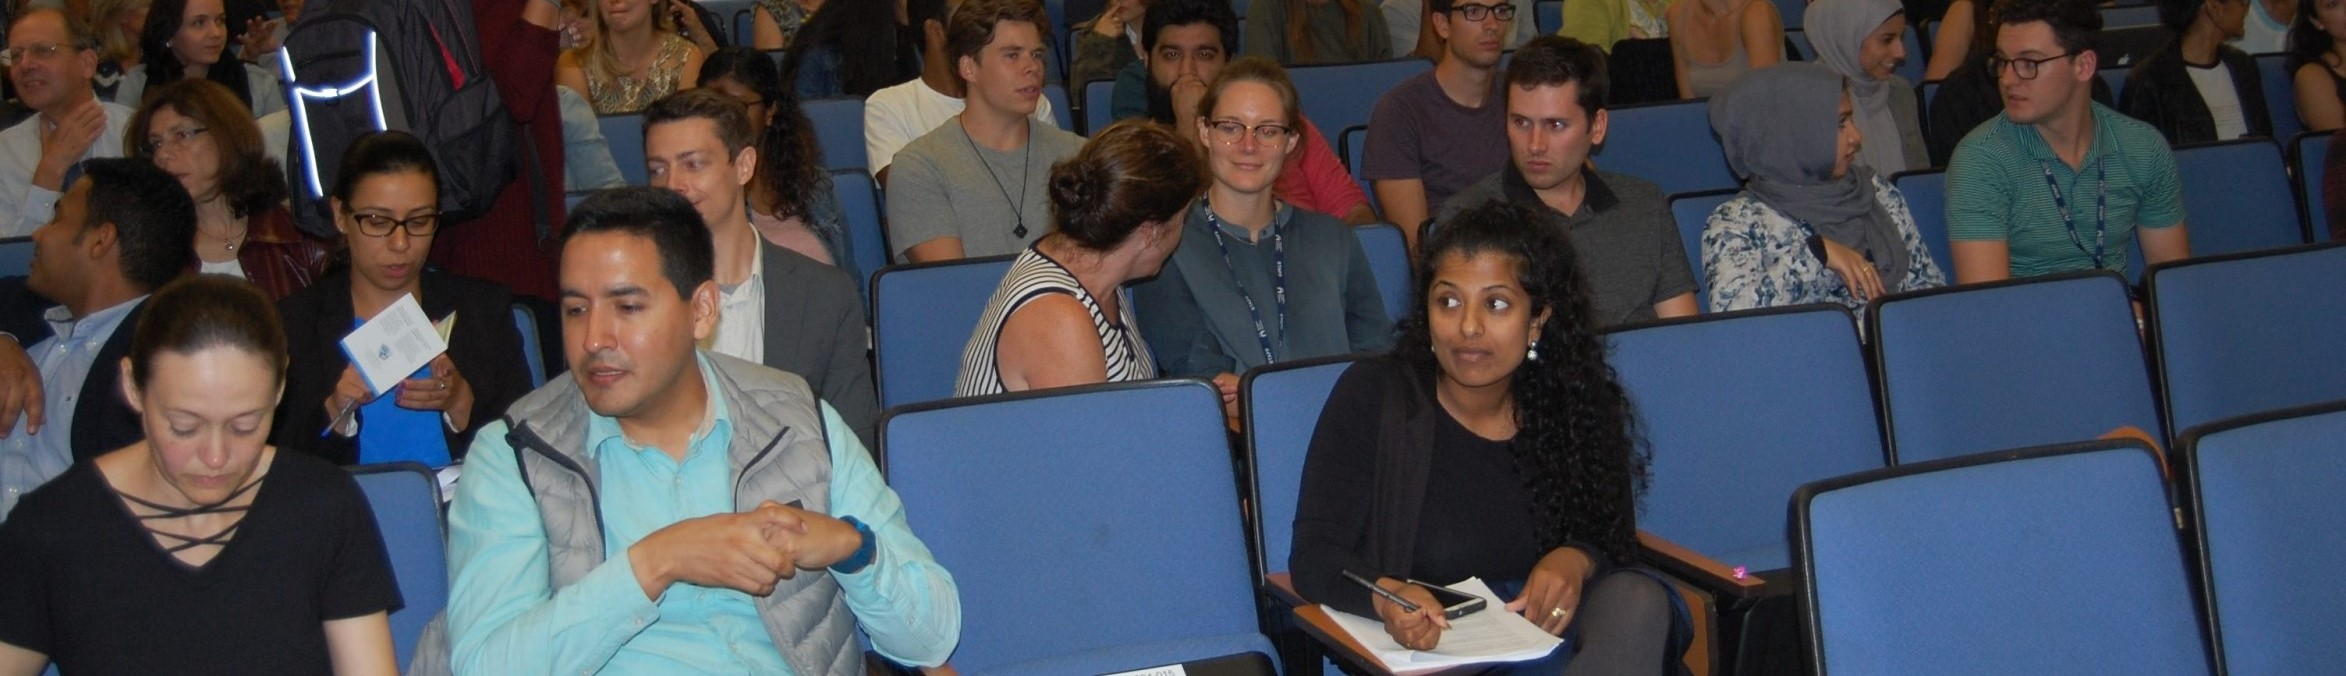 Lecture audience